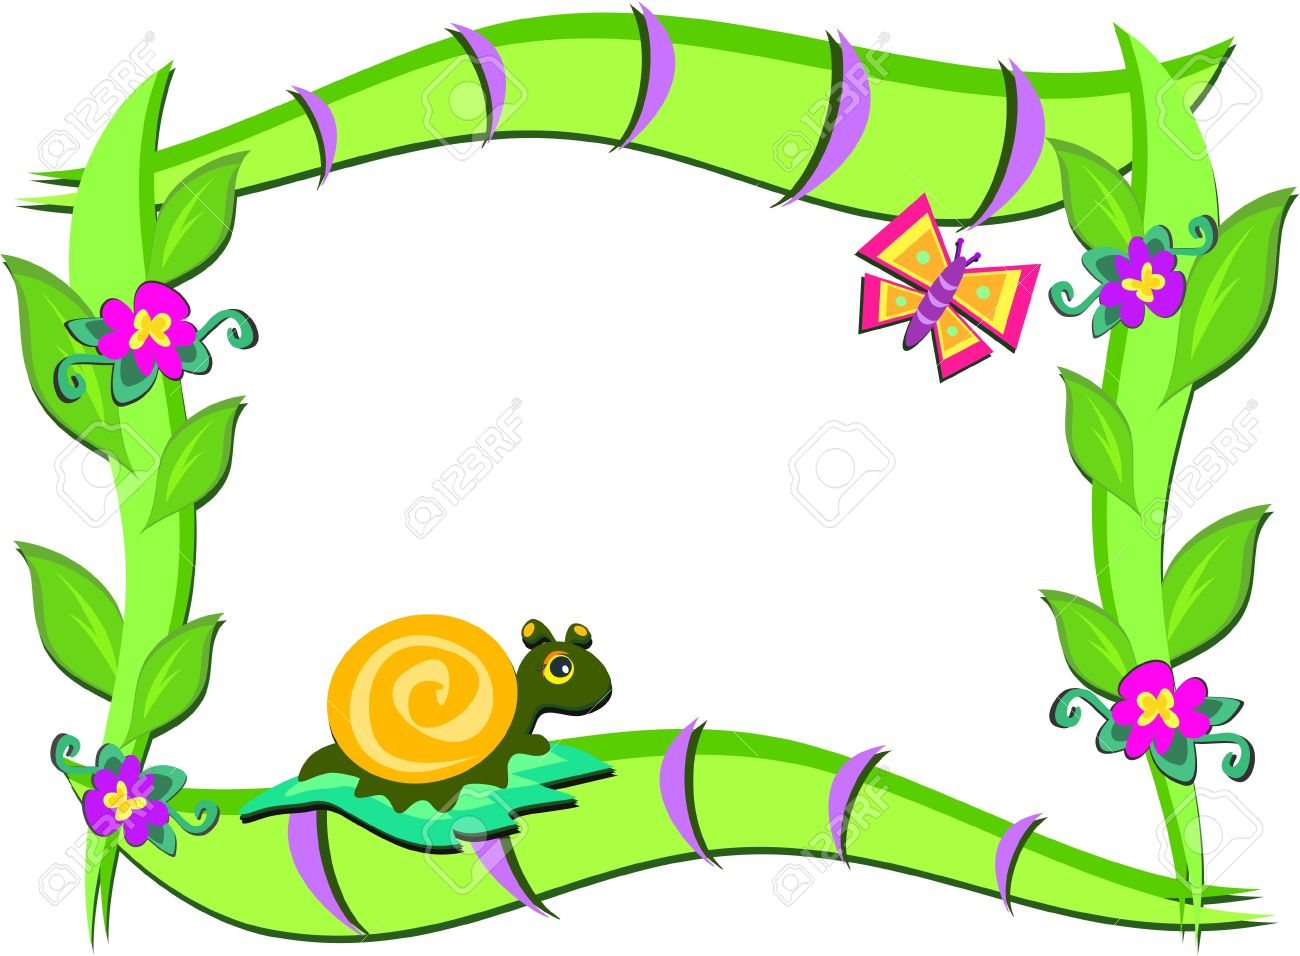 frame of nature plants snail and butterfly royalty free cliparts vectors and stock illustration image 11094446 frame of nature plants snail and butterfly